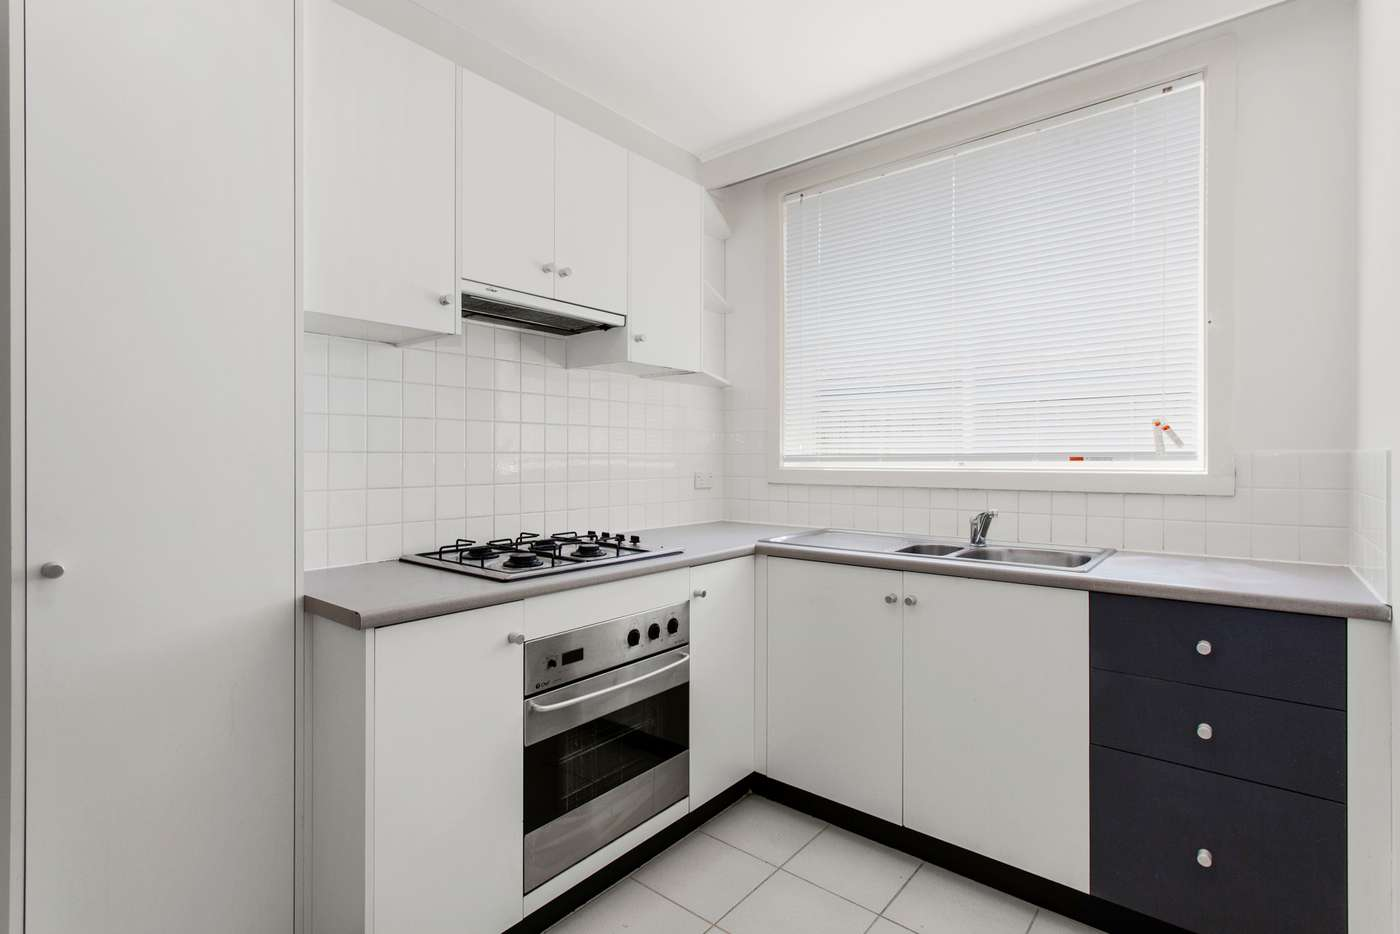 Main view of Homely apartment listing, 2/36 Elizabeth Street, Bentleigh East VIC 3165